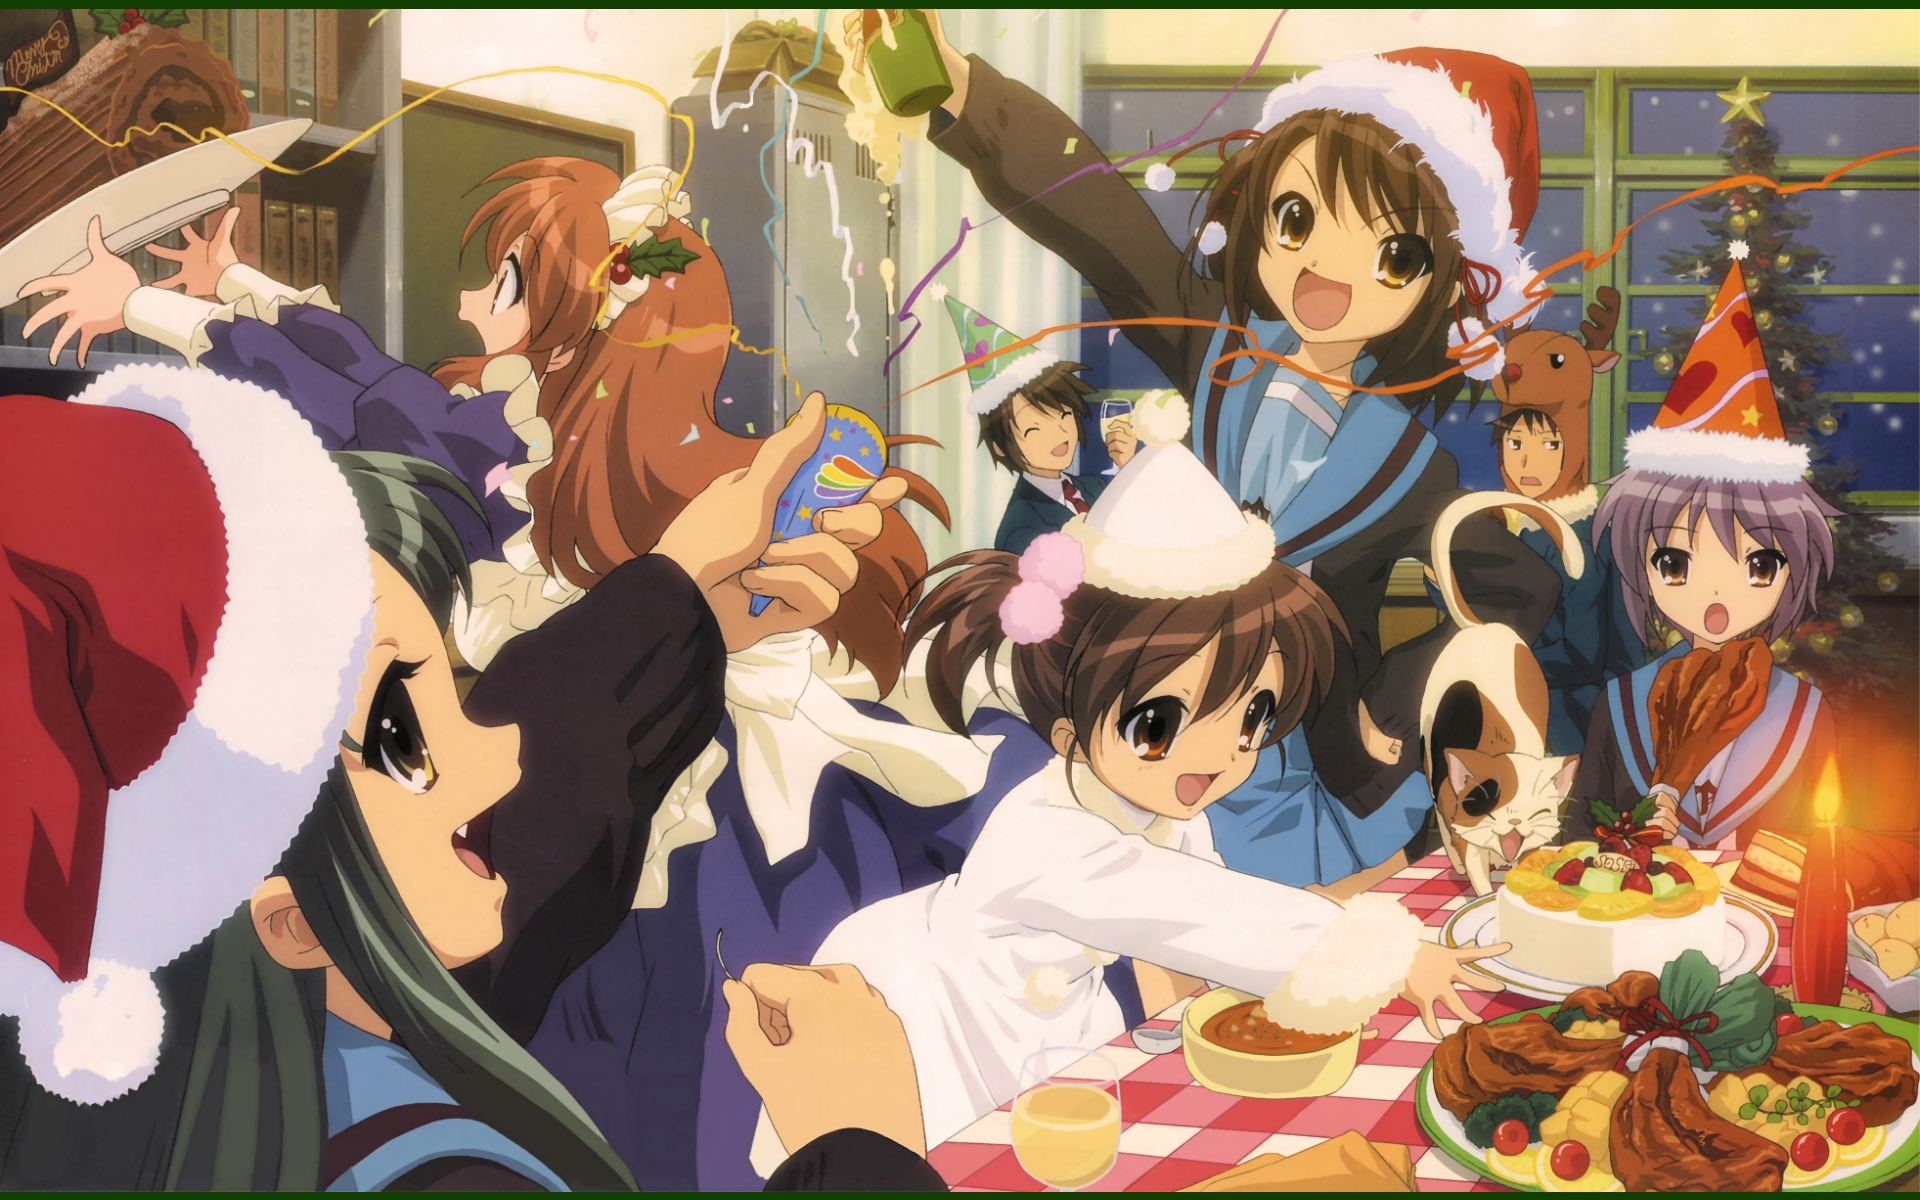 The Melancholy of Haruhi Suzumiya - The Melancholy of ...